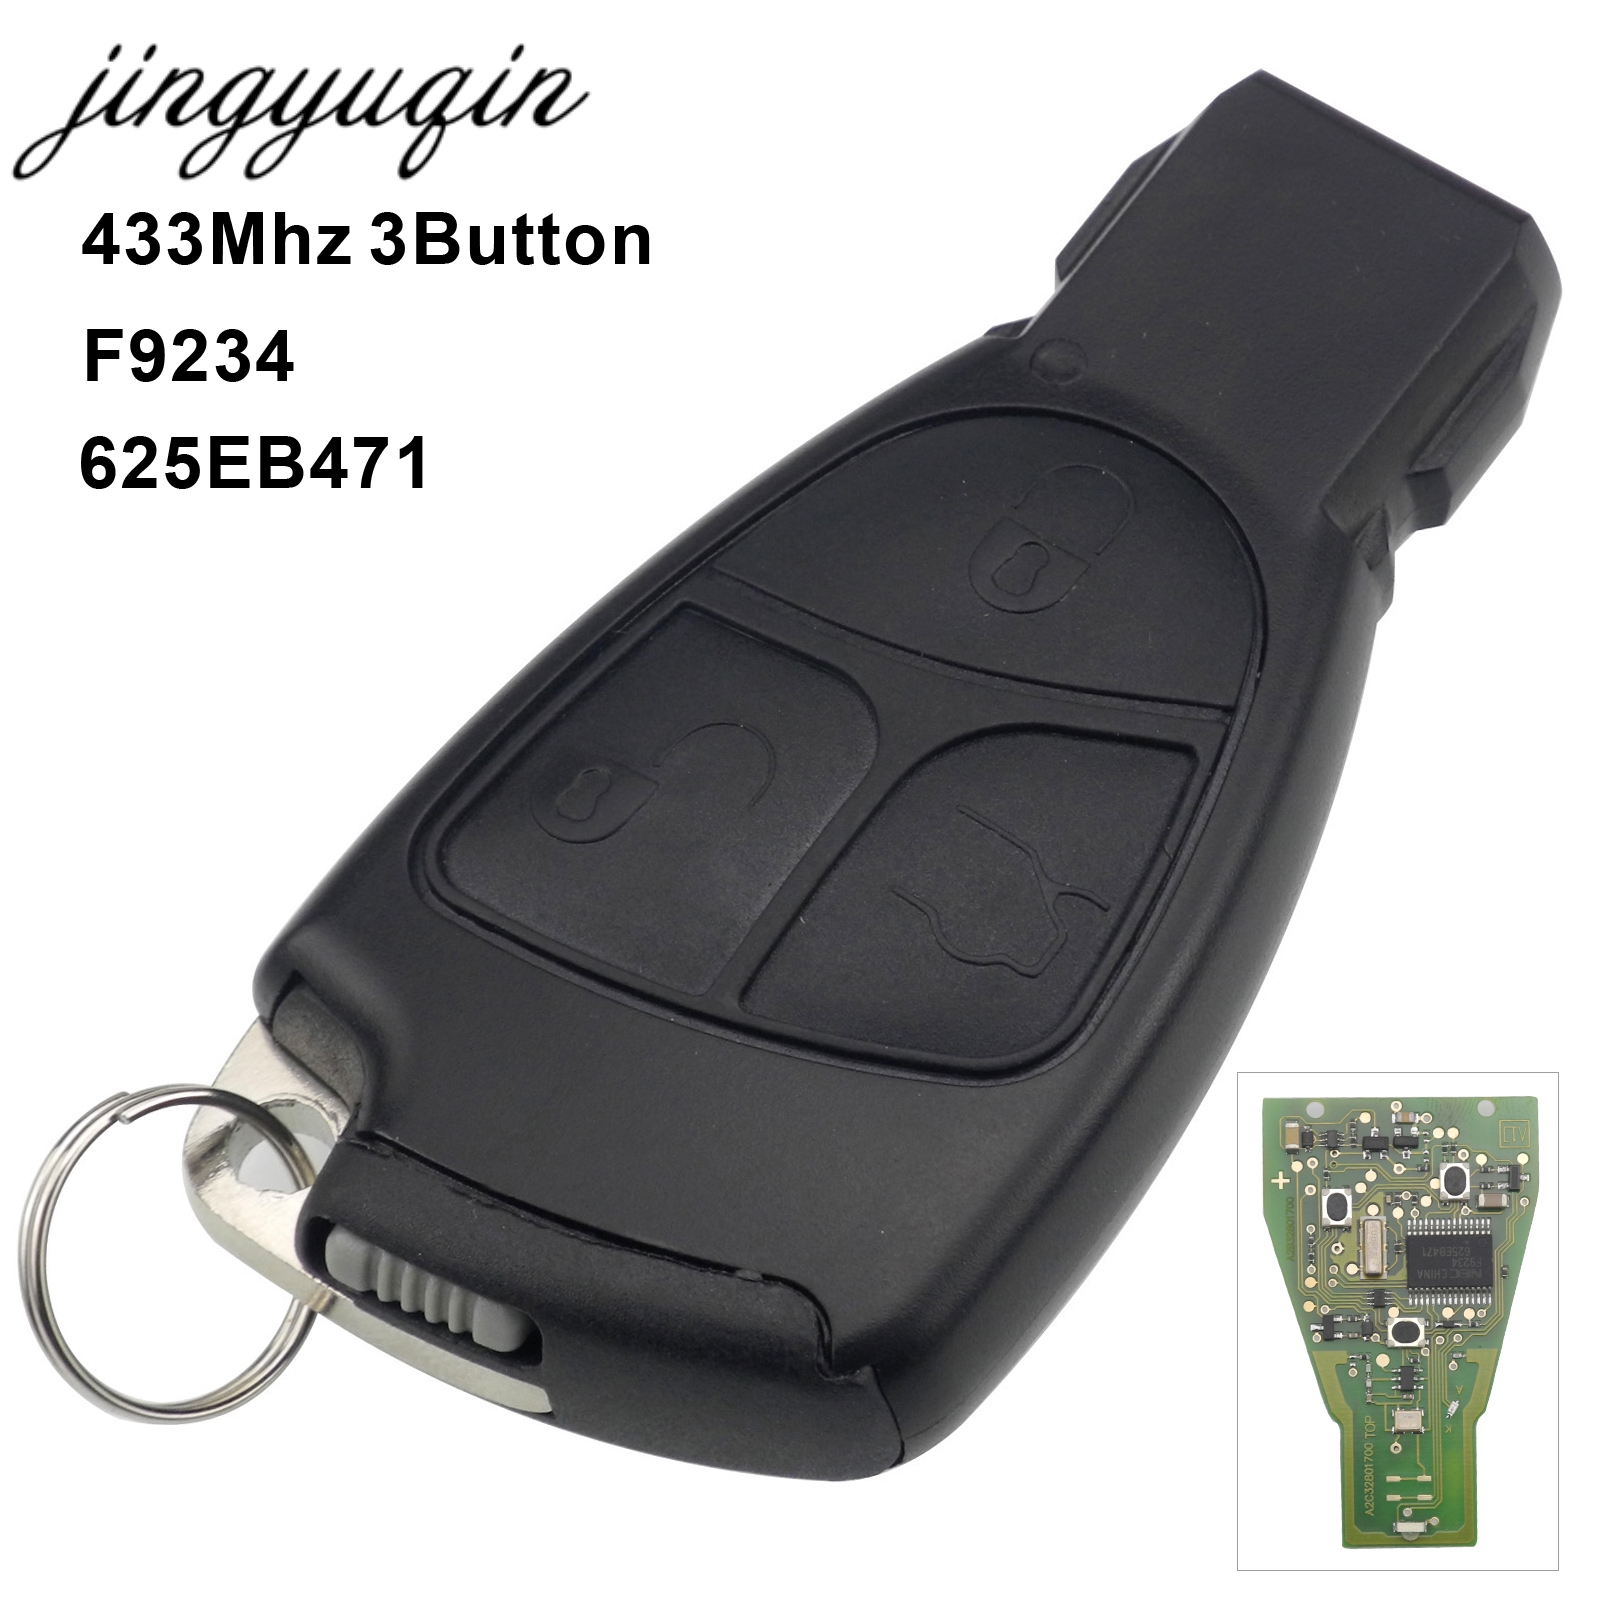 jingyuqin 433Mhz 3 Buttons Remote Key Fob For Mercedes Benz B C E ML S CLK CL 3B 3BT Complte Control circuit Board new 8 for samsung galaxy tab a p350 lcd display with touch screen digitizer sensors full assembly panel lcd combo replacement